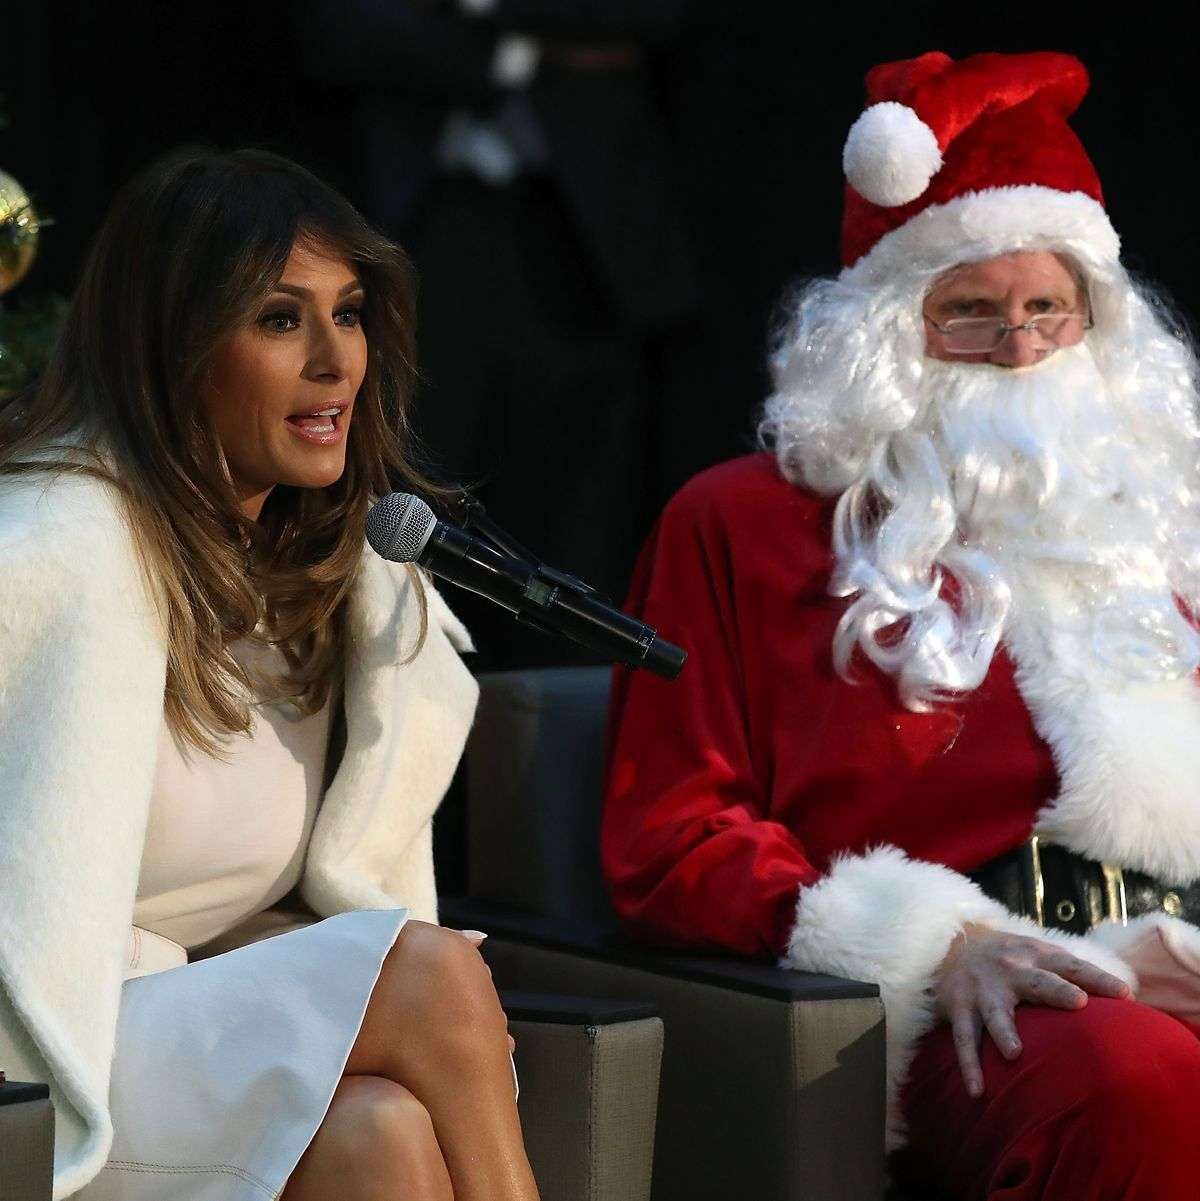 Where Is President Trump Spending Christmas 2020 Melania Trump Rants About 'Christmas Stuff' in Leaked Tape